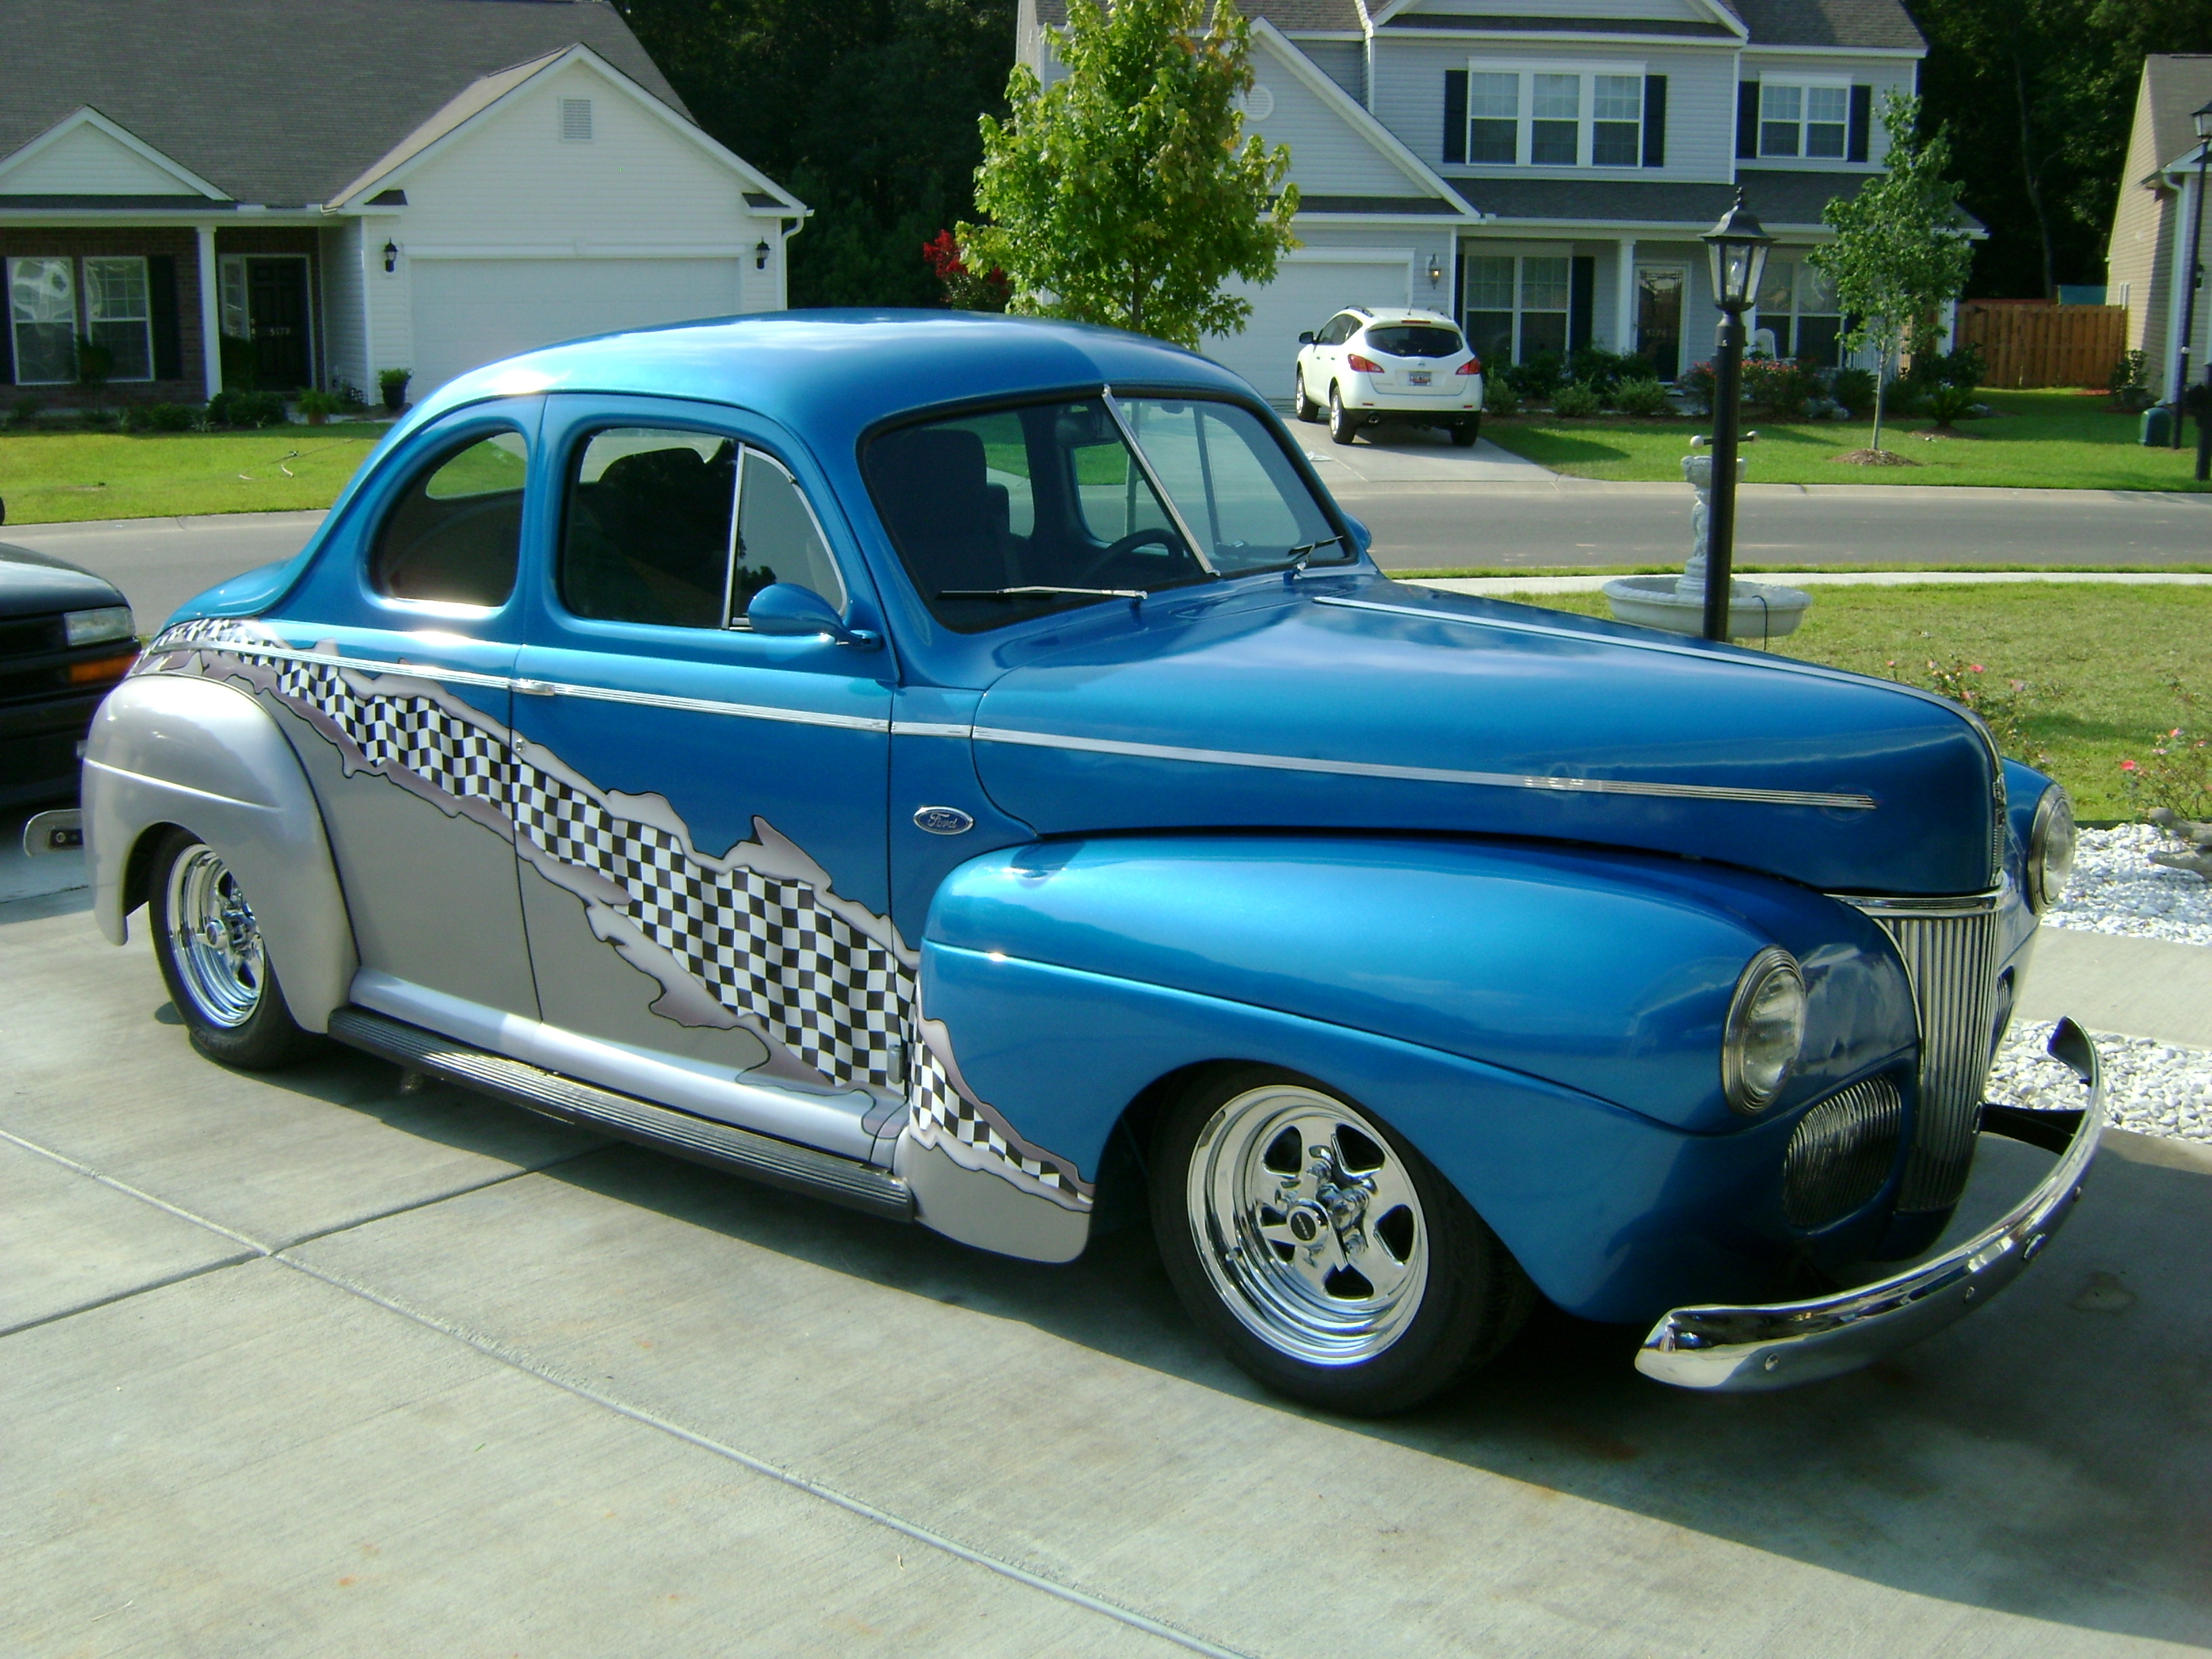 tiger8000's 1941 Ford Coupe